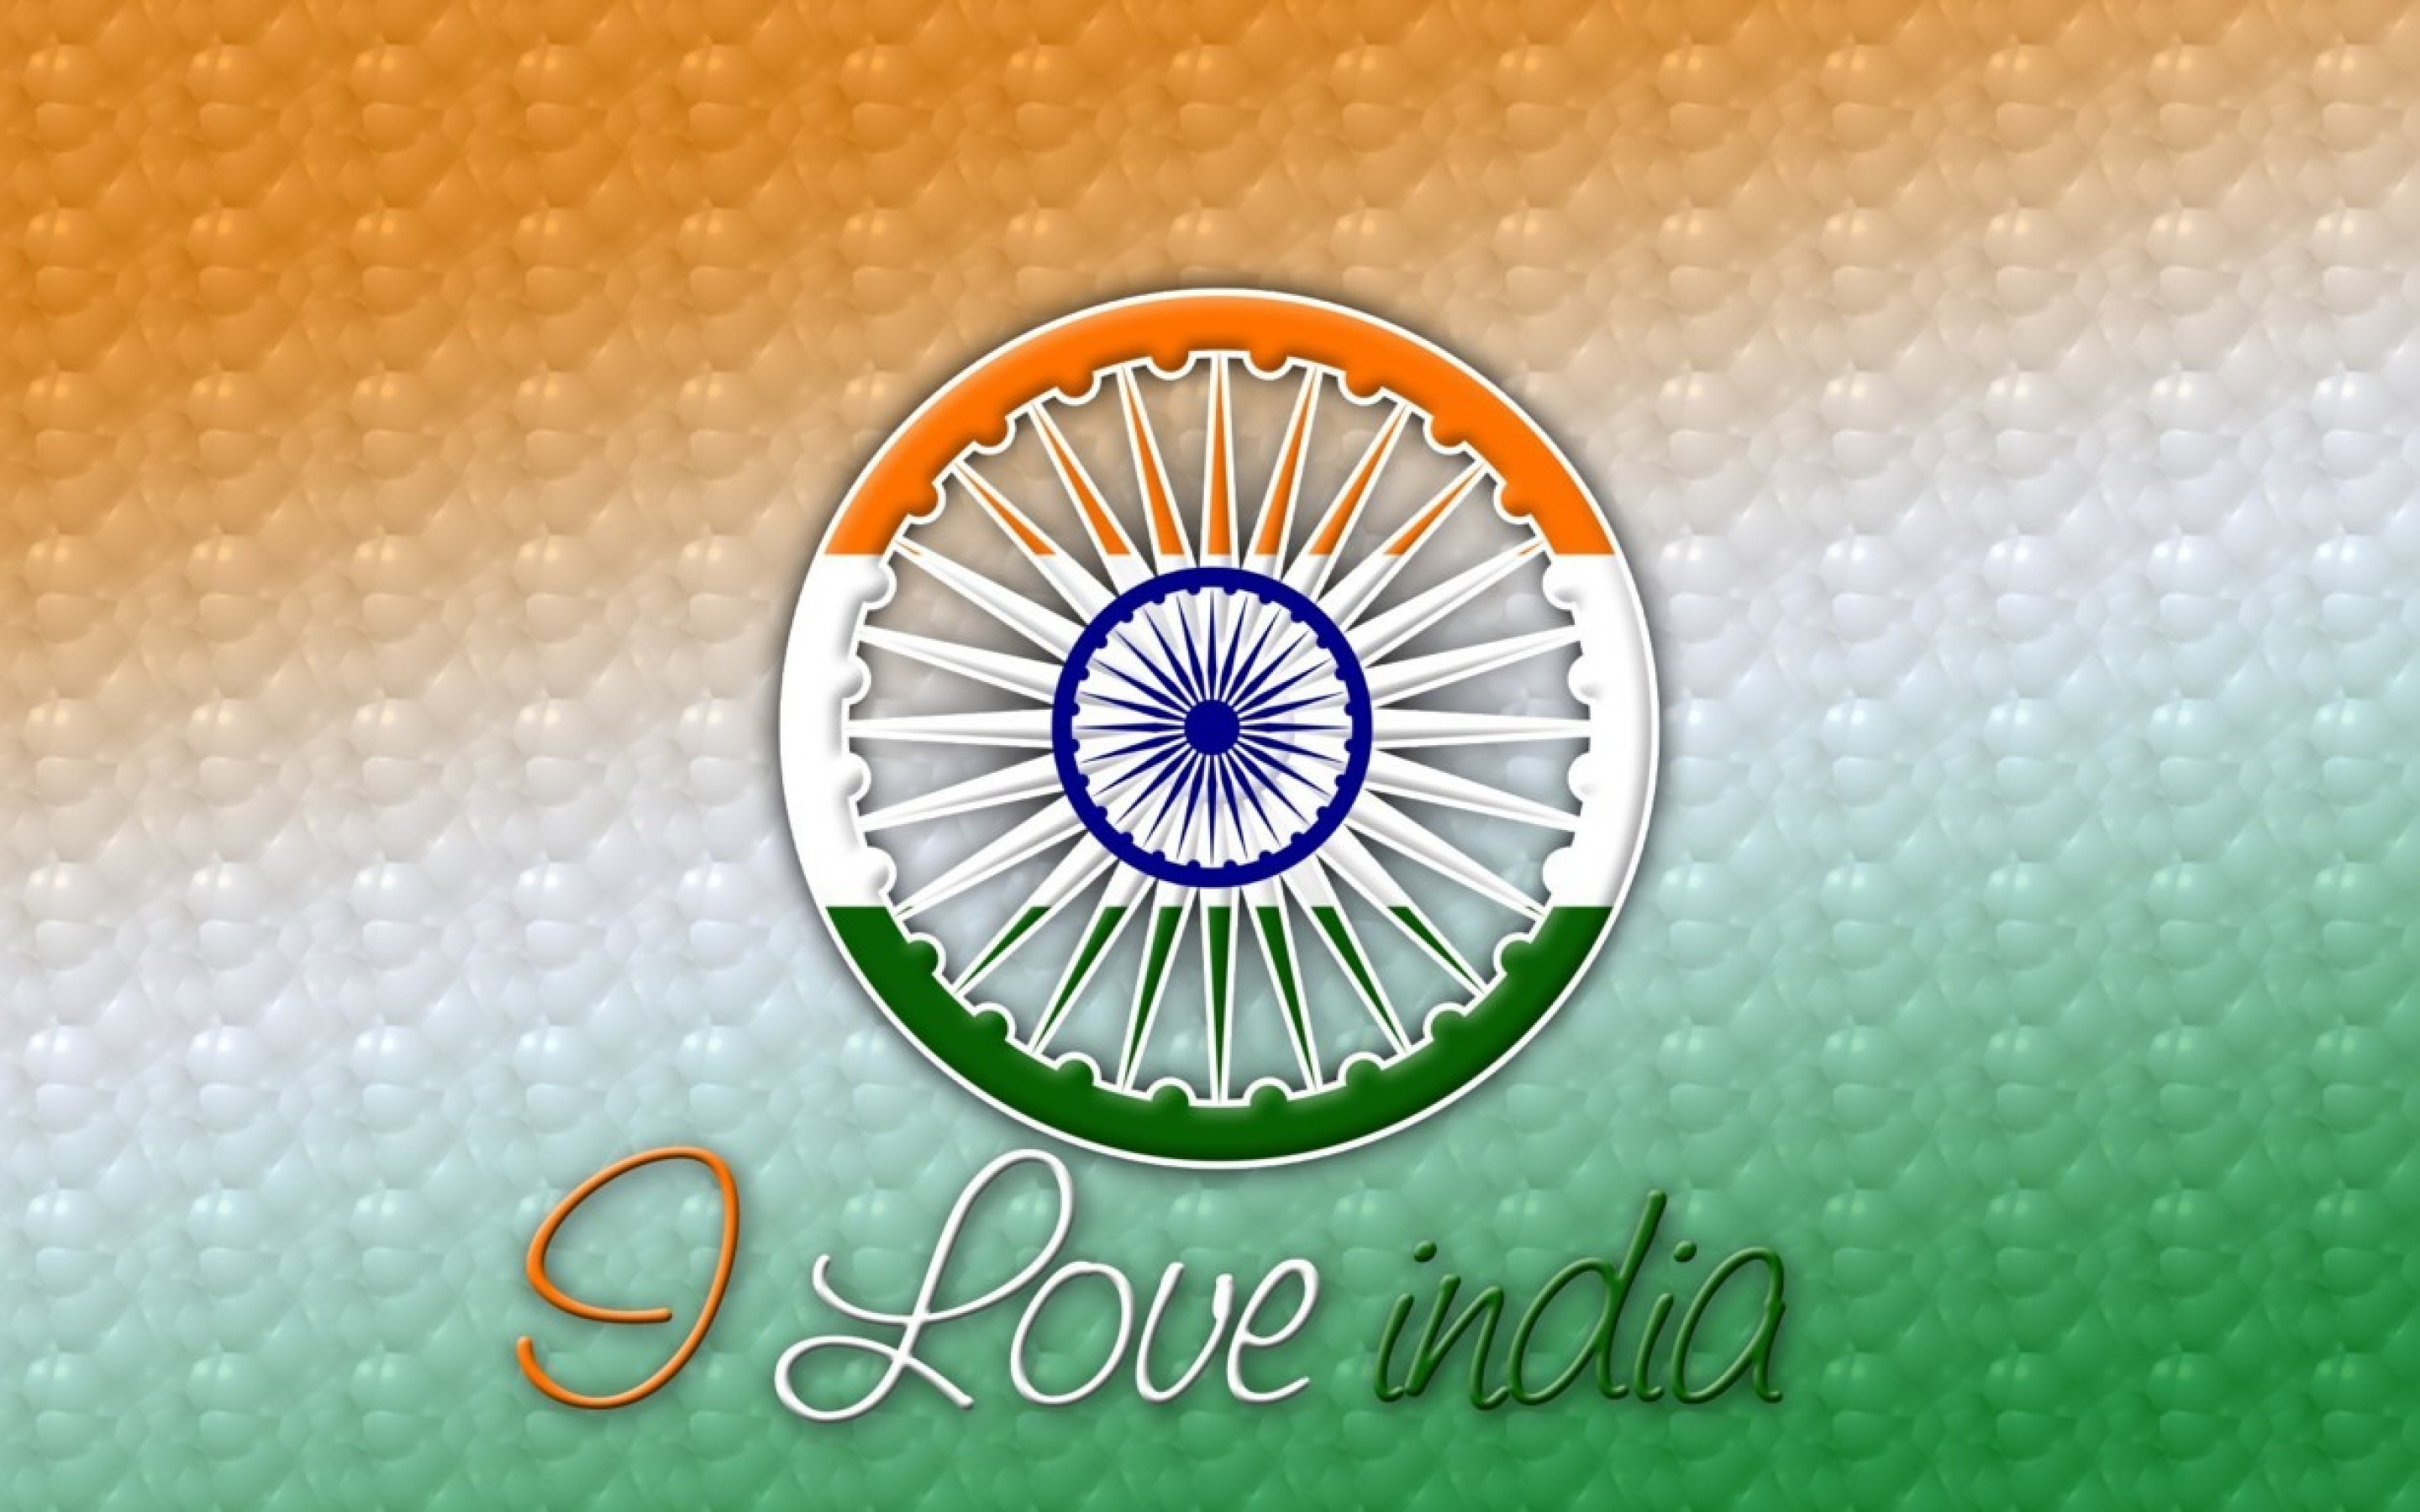 school essay indian independence day India independence day in india, independence day is observed on the 15th august every year, because on the said day of 1947, india won her freedom from the british rule after about 200 years it is a red-lettered day, on which the schools and government and private offices remain closed.